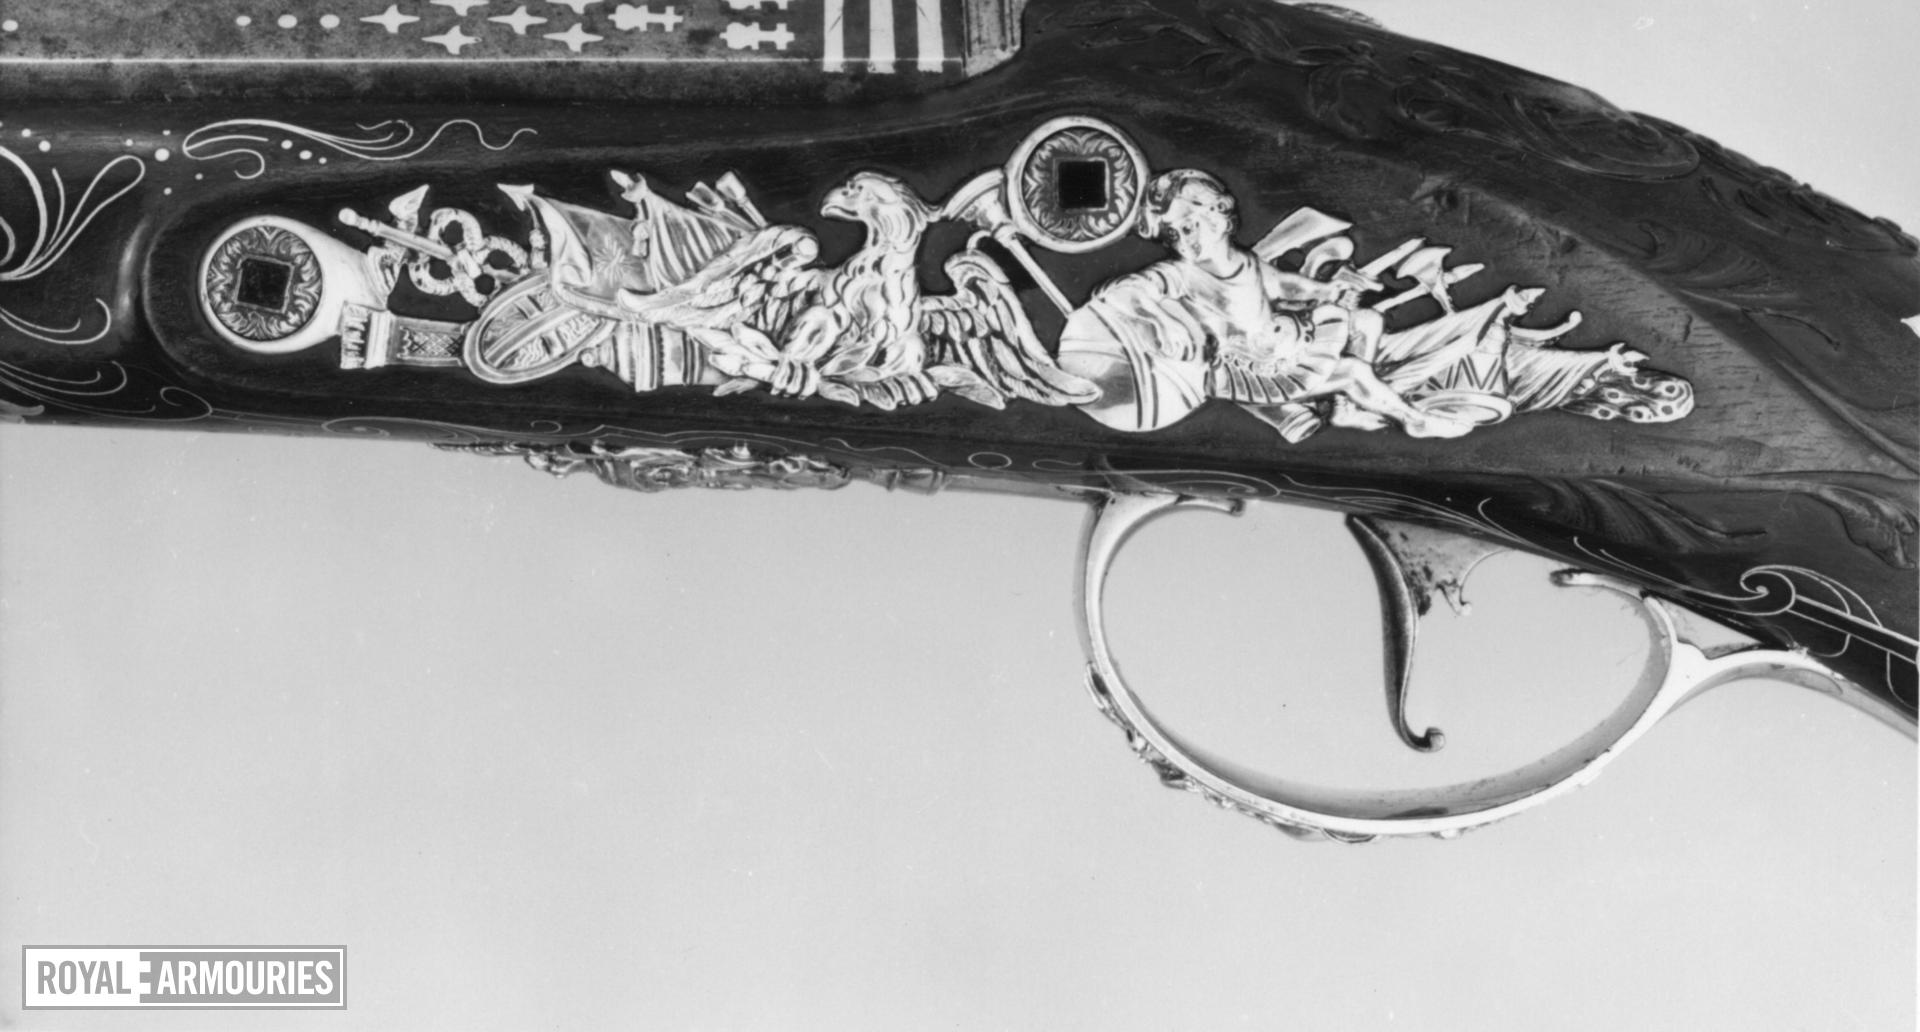 Flintlock holster pistol By S. Brunn One of a pair; see XII.1656